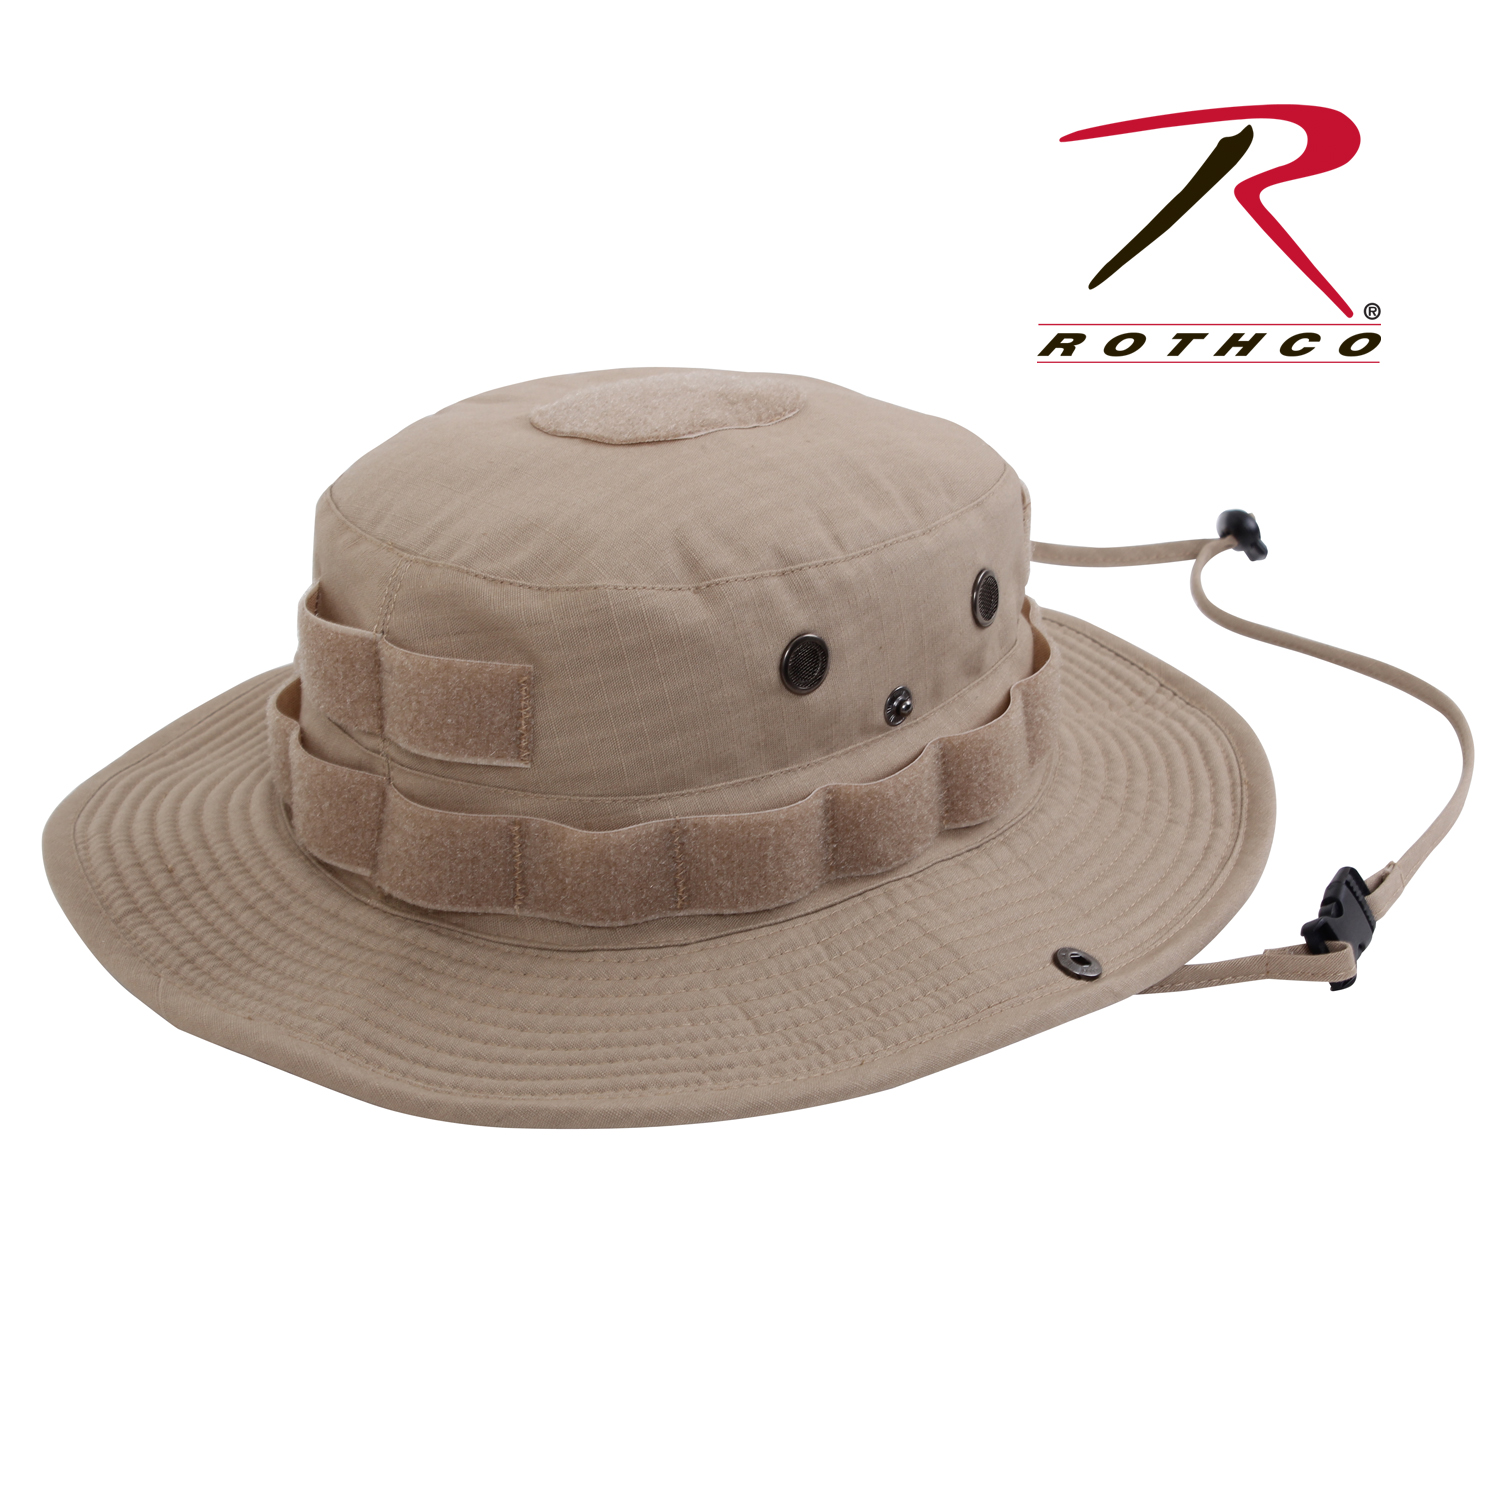 b1e63095764 5628 Rothco Tactical Boonie Hat